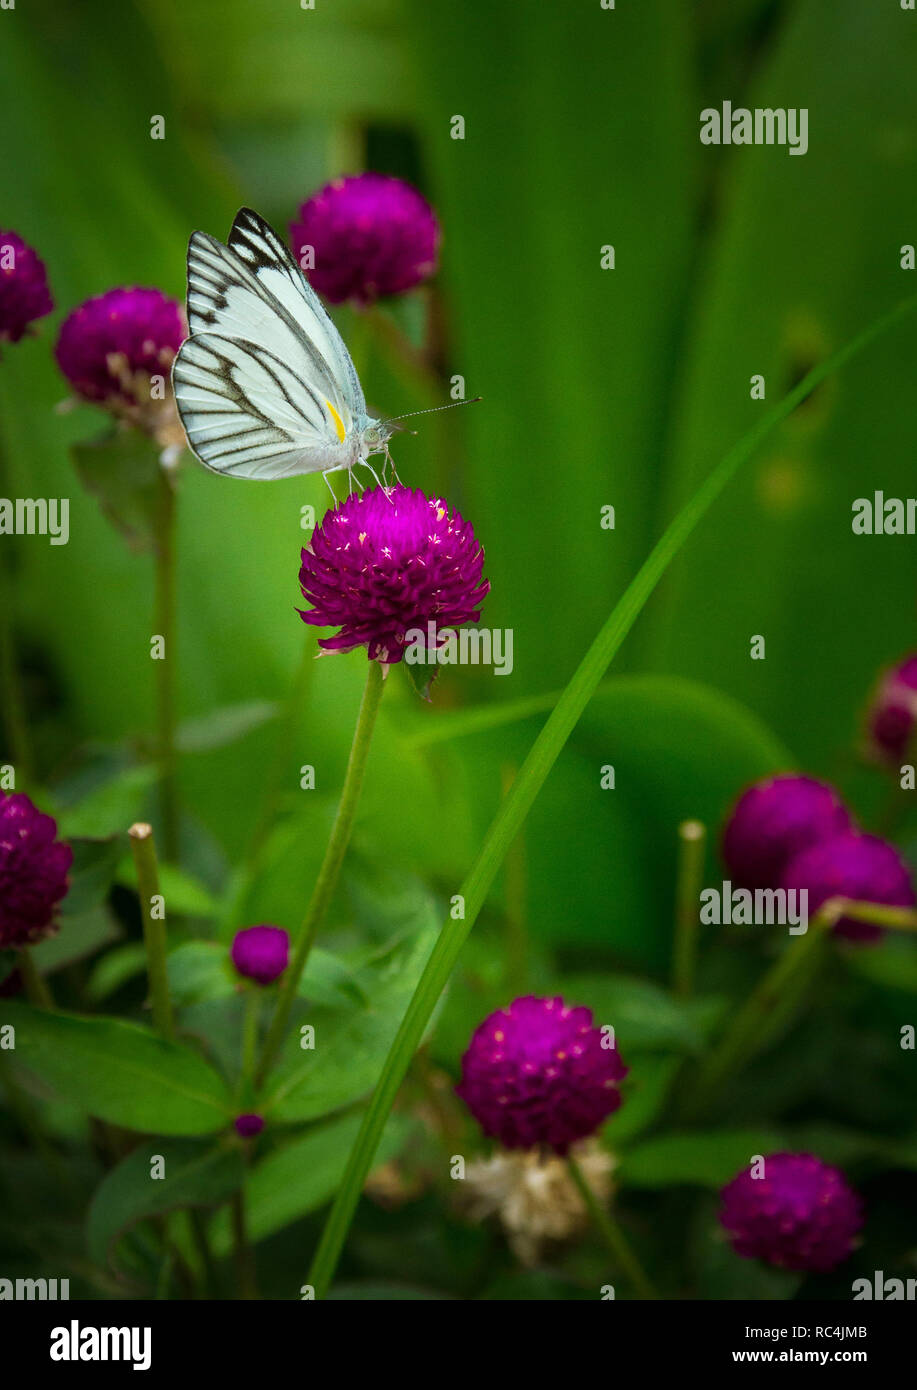 Beautiful butterfly on the Gomphrena flower to help pollinate the plants - Stock Image